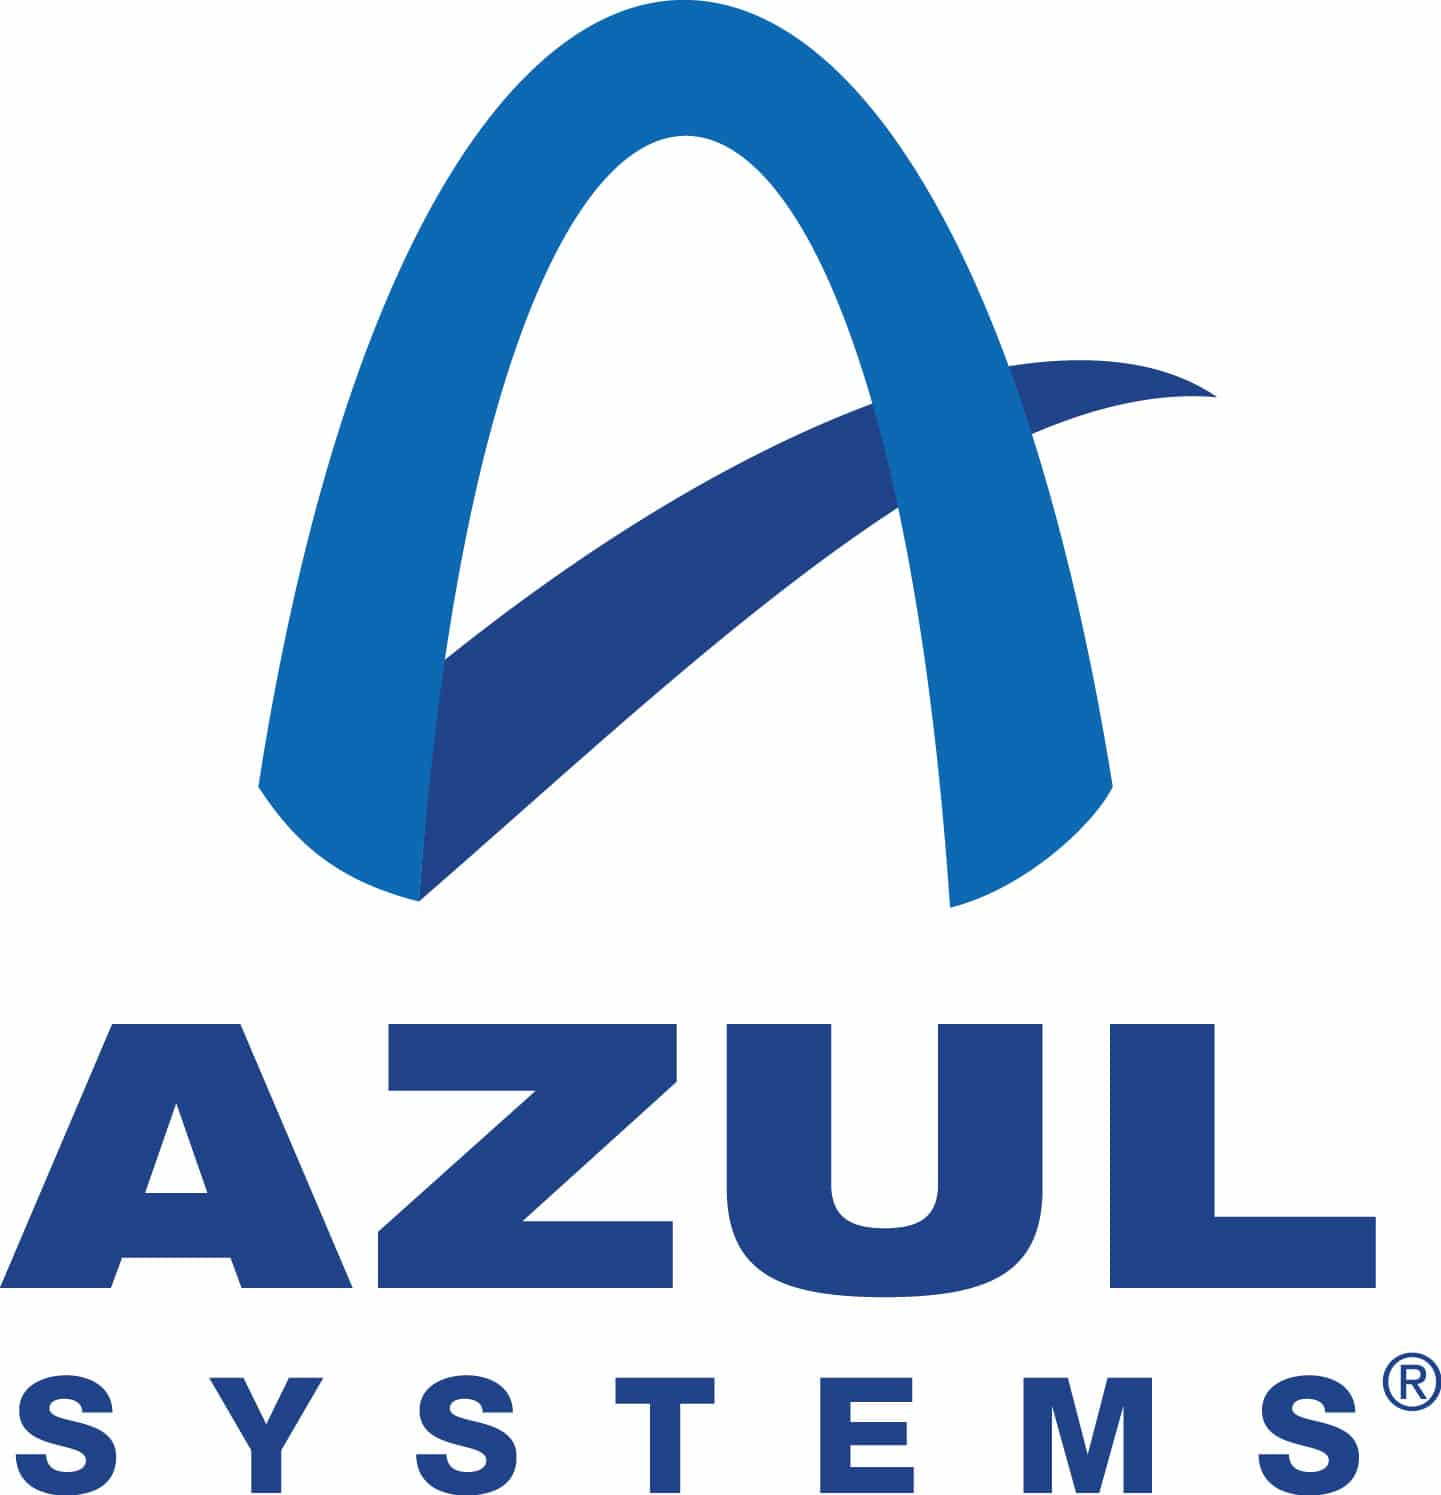 Java Deployed: Azul's Zing Becomes Supported by Redline Trading Solutions